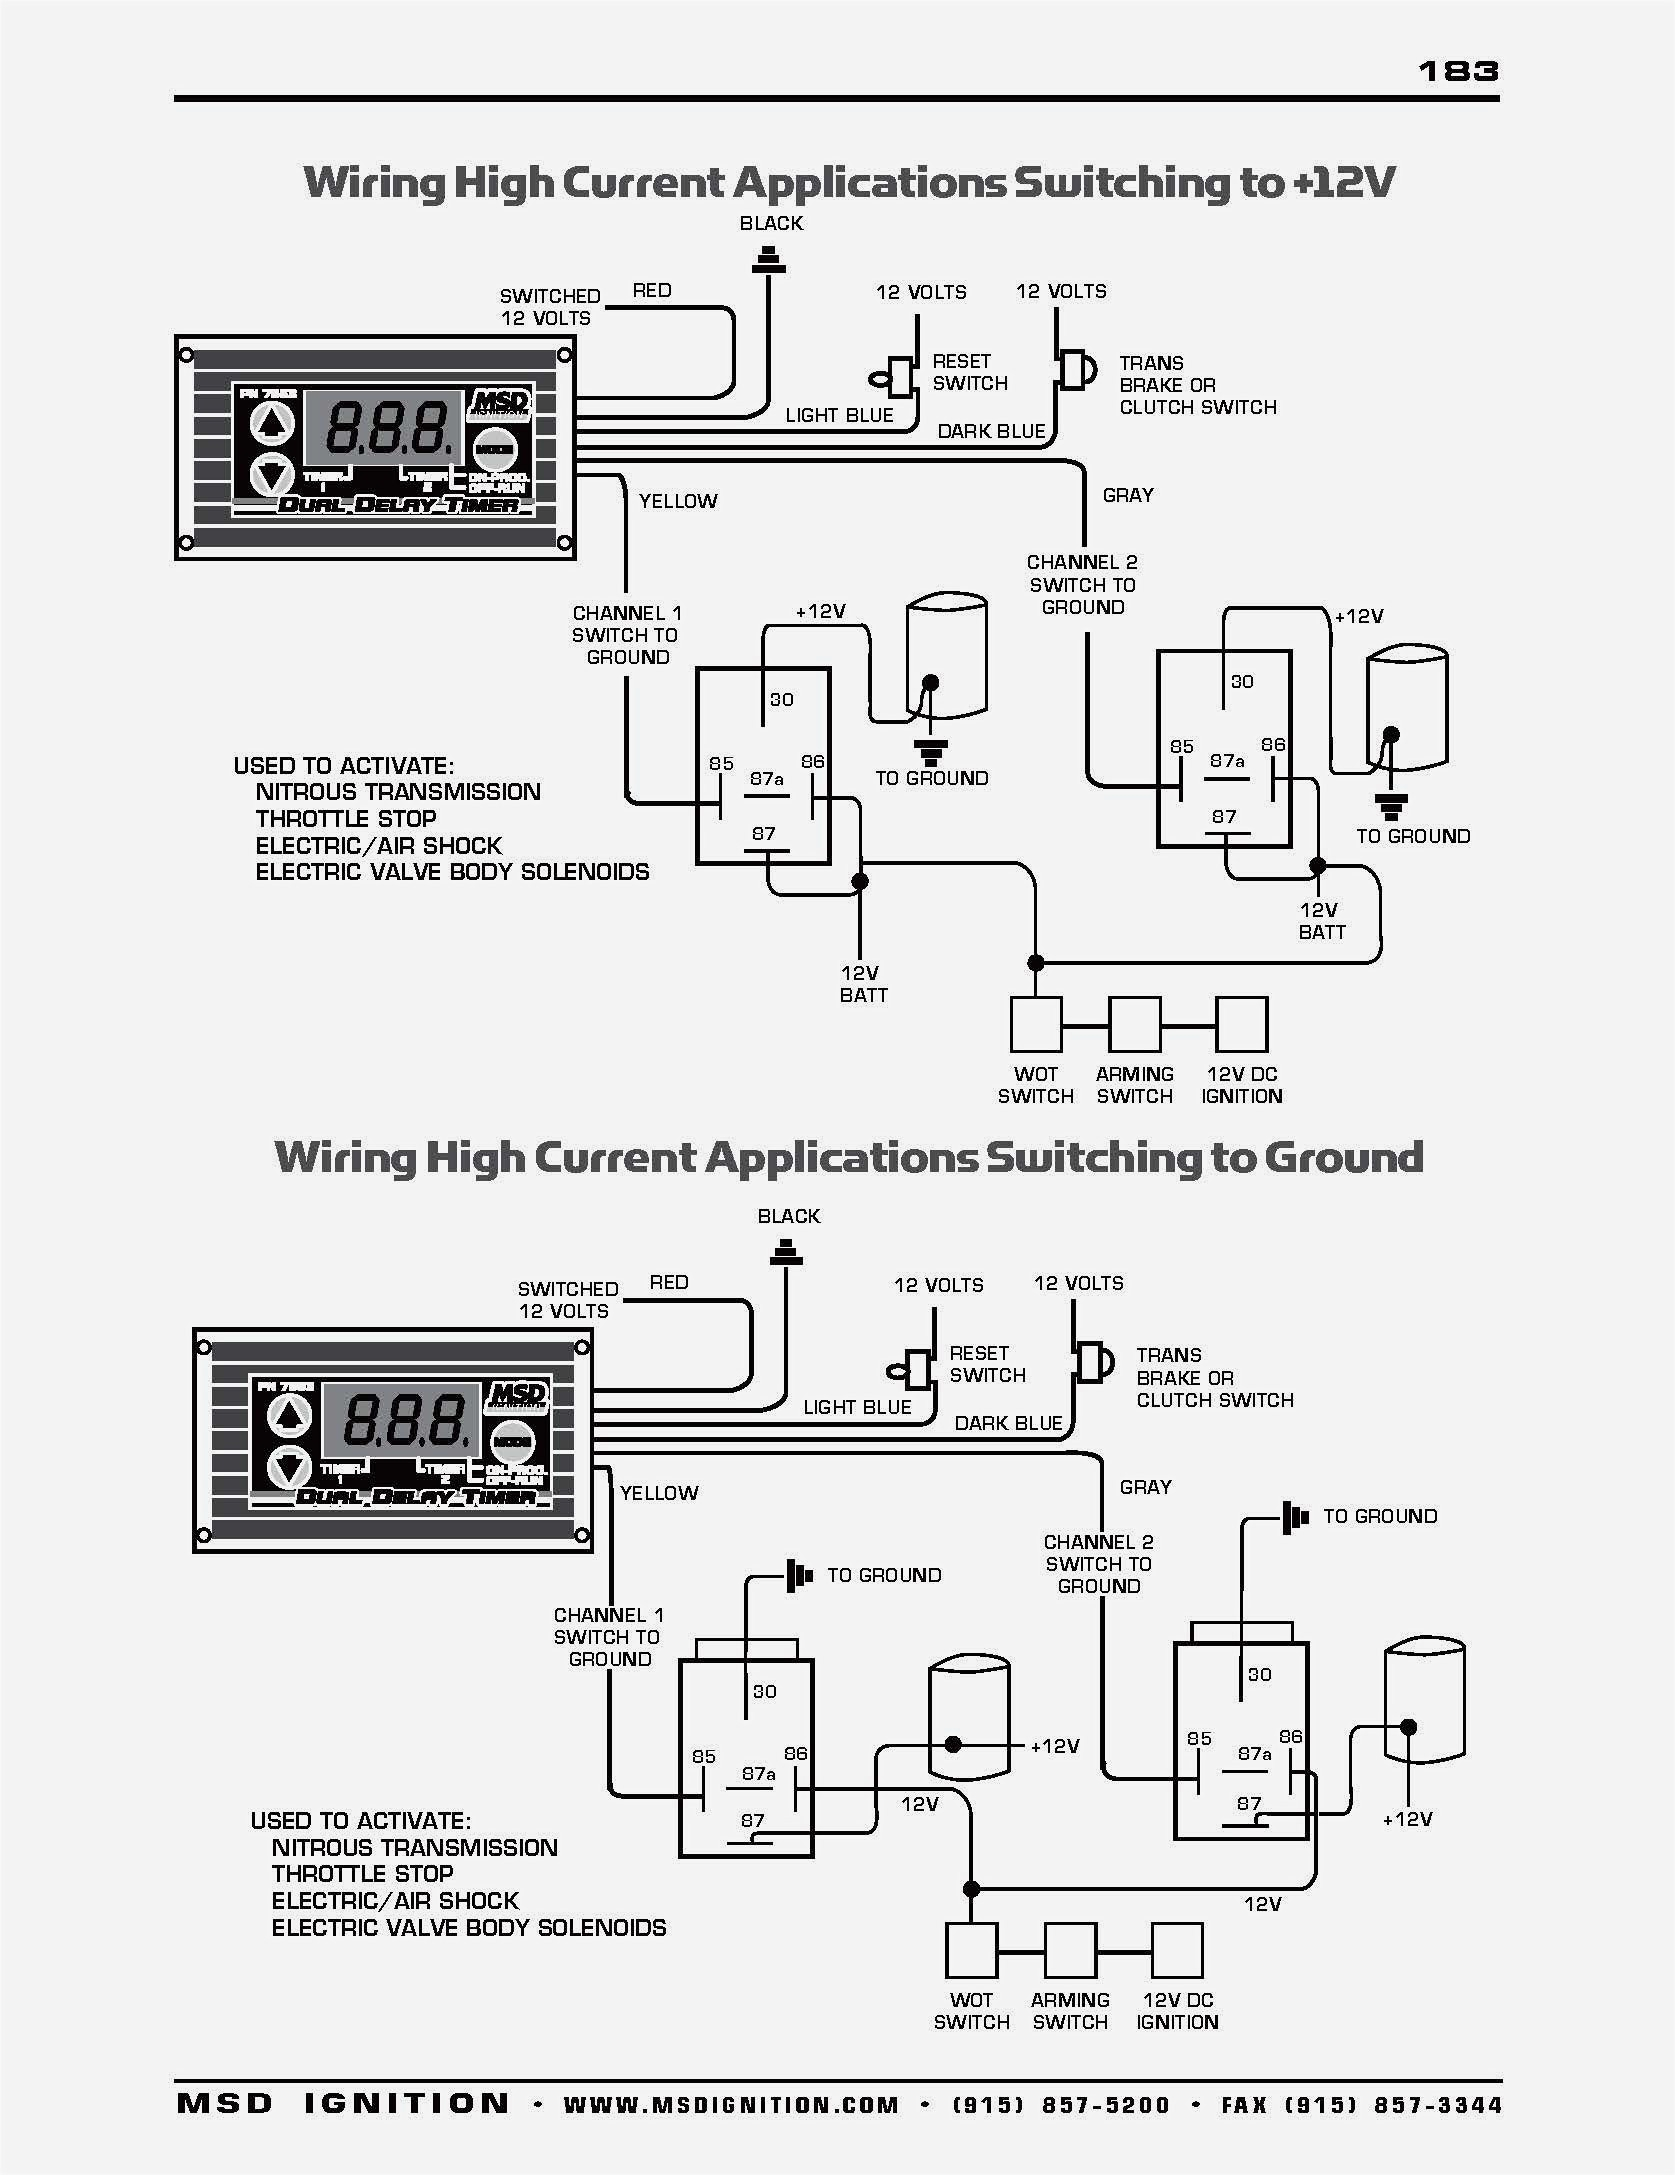 dutchmen wiring diagrams